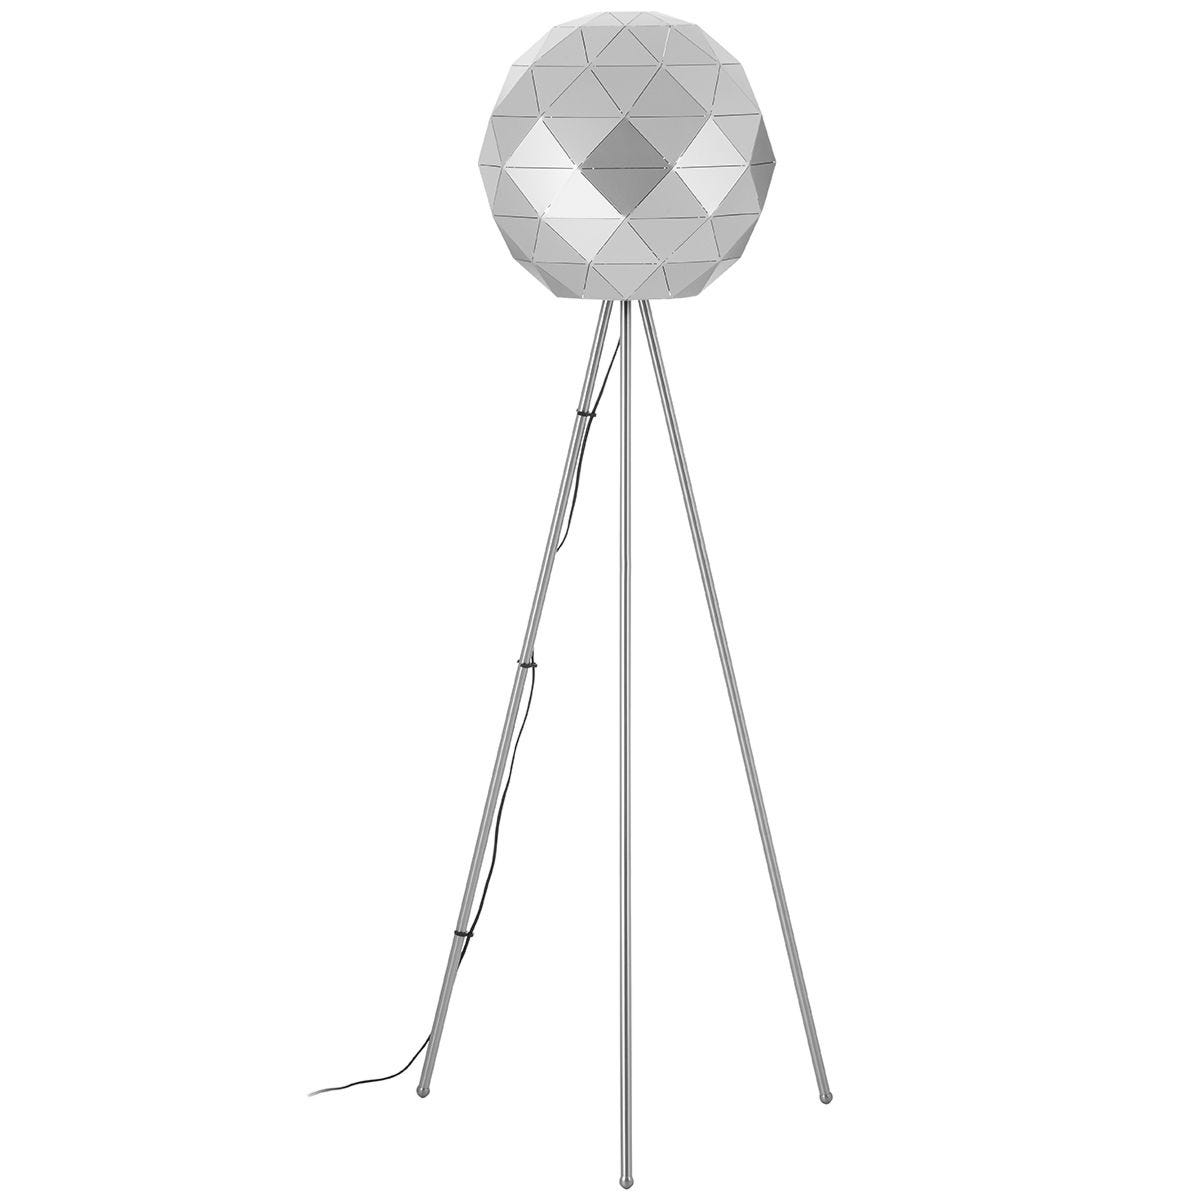 Premier Housewares Mateo Geometric Floor Lamp with Steel Base - Silver